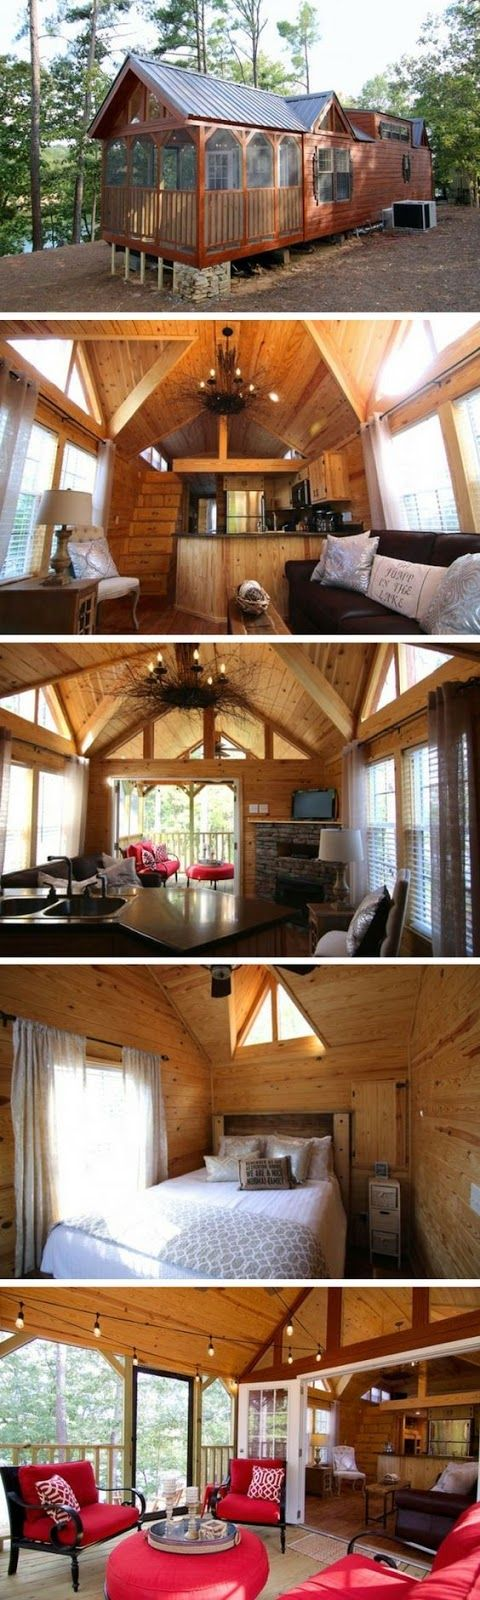 Chattahoochee A screened porch, loft windows and full kitchen offer a serene escape! So Loving this one! Check It Out! ...